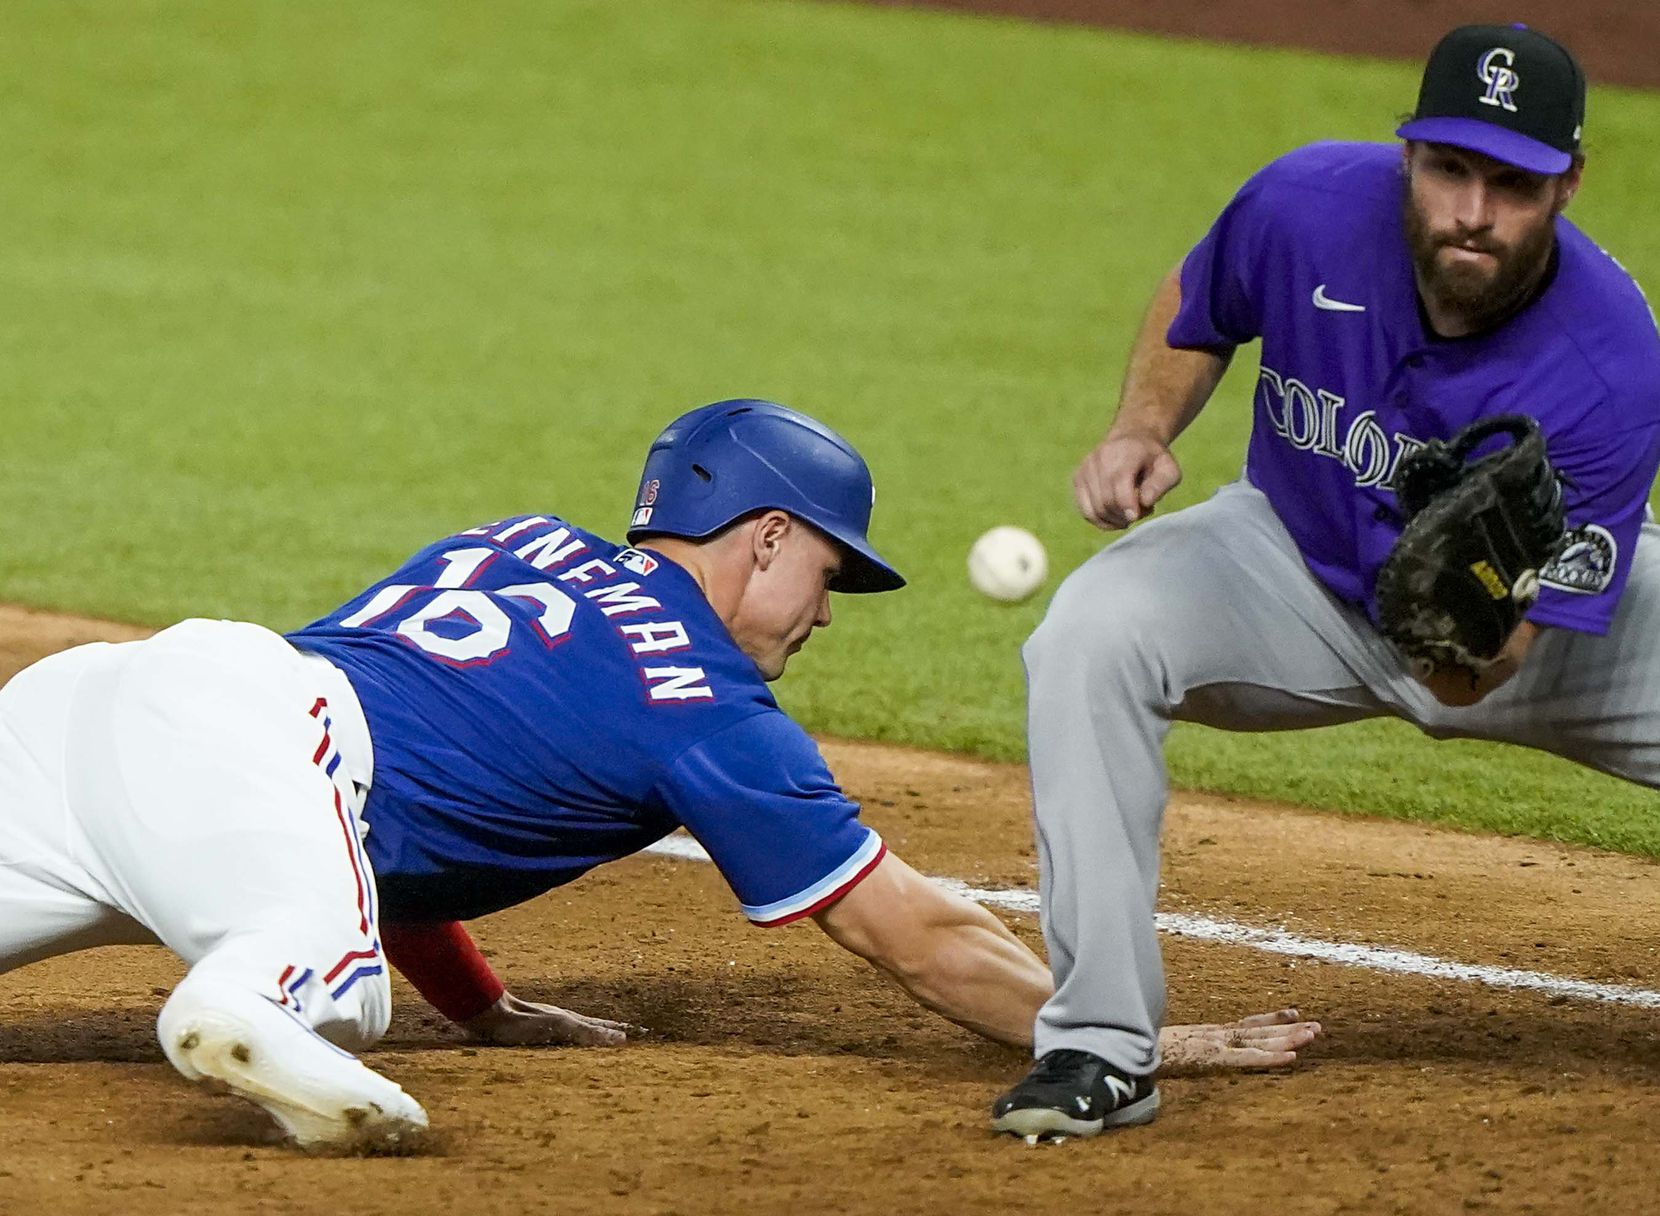 Texas Rangers outfielder Scott Heineman gets back to first base on a pickoff attempt ahead of the throw to Colorado Rockies first baseman Daniel Murphy during the fifth inning of an exhibition game at Globe Life Field on Tuesday, July 21, 2020.